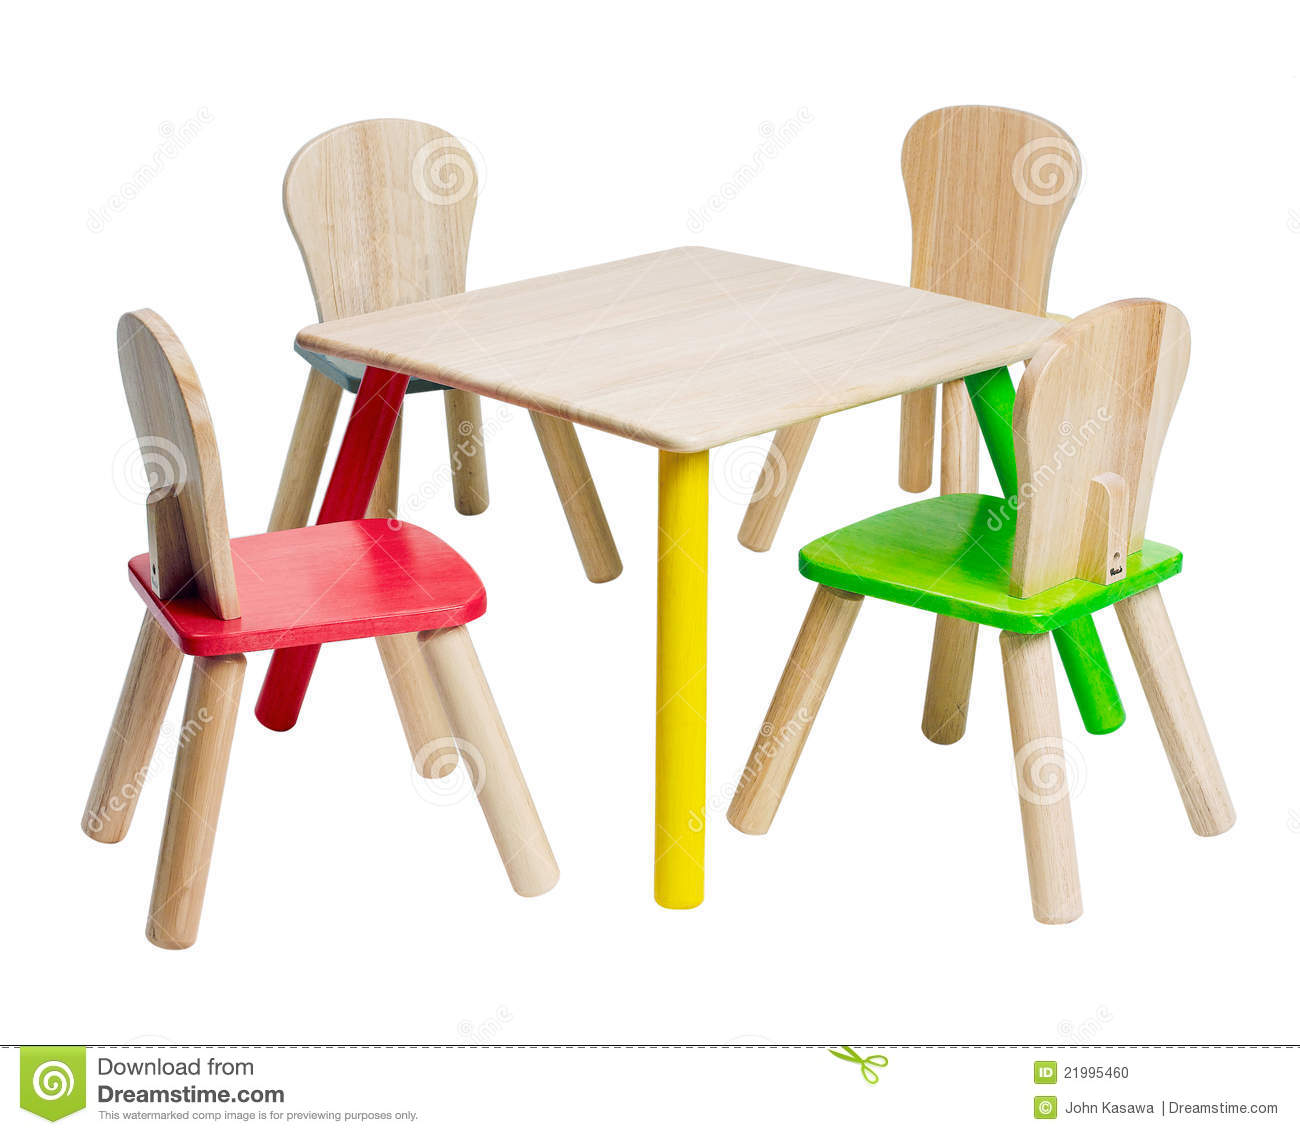 Toddler Wooden Chair Wooden Table And Chairs Toys For Kid Stock Photo Image Of Cube